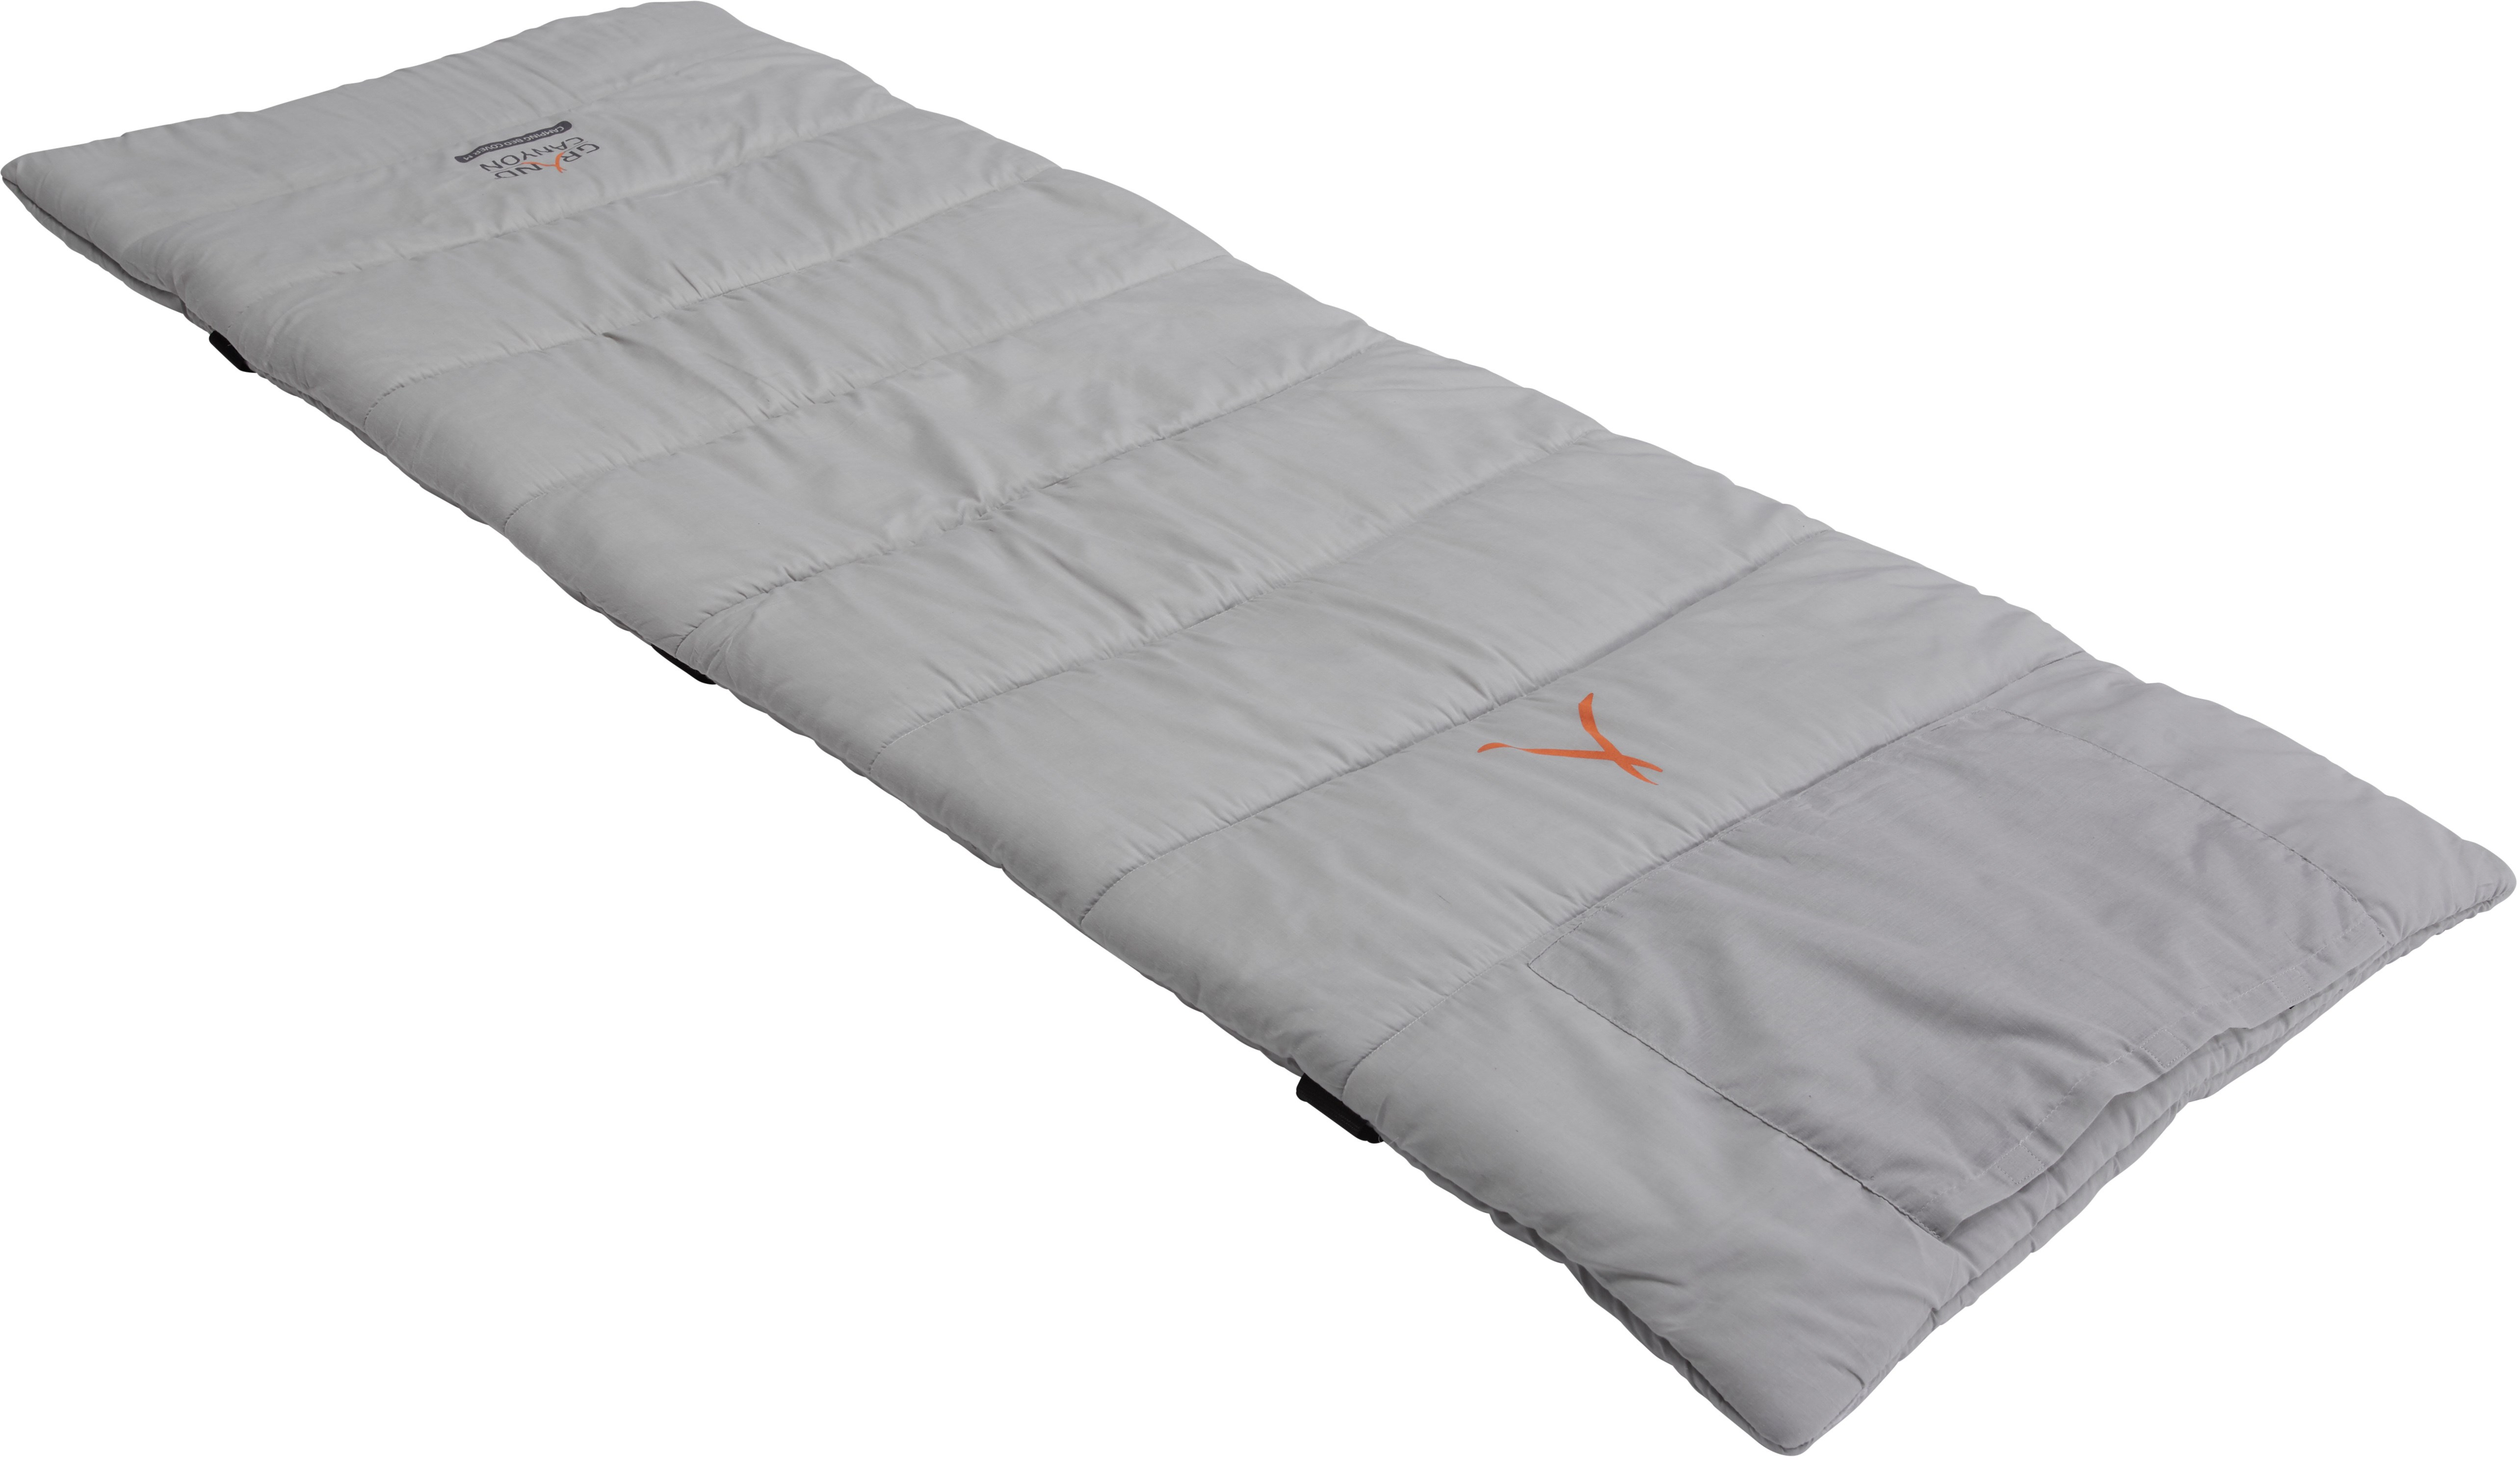 Camping bed cover